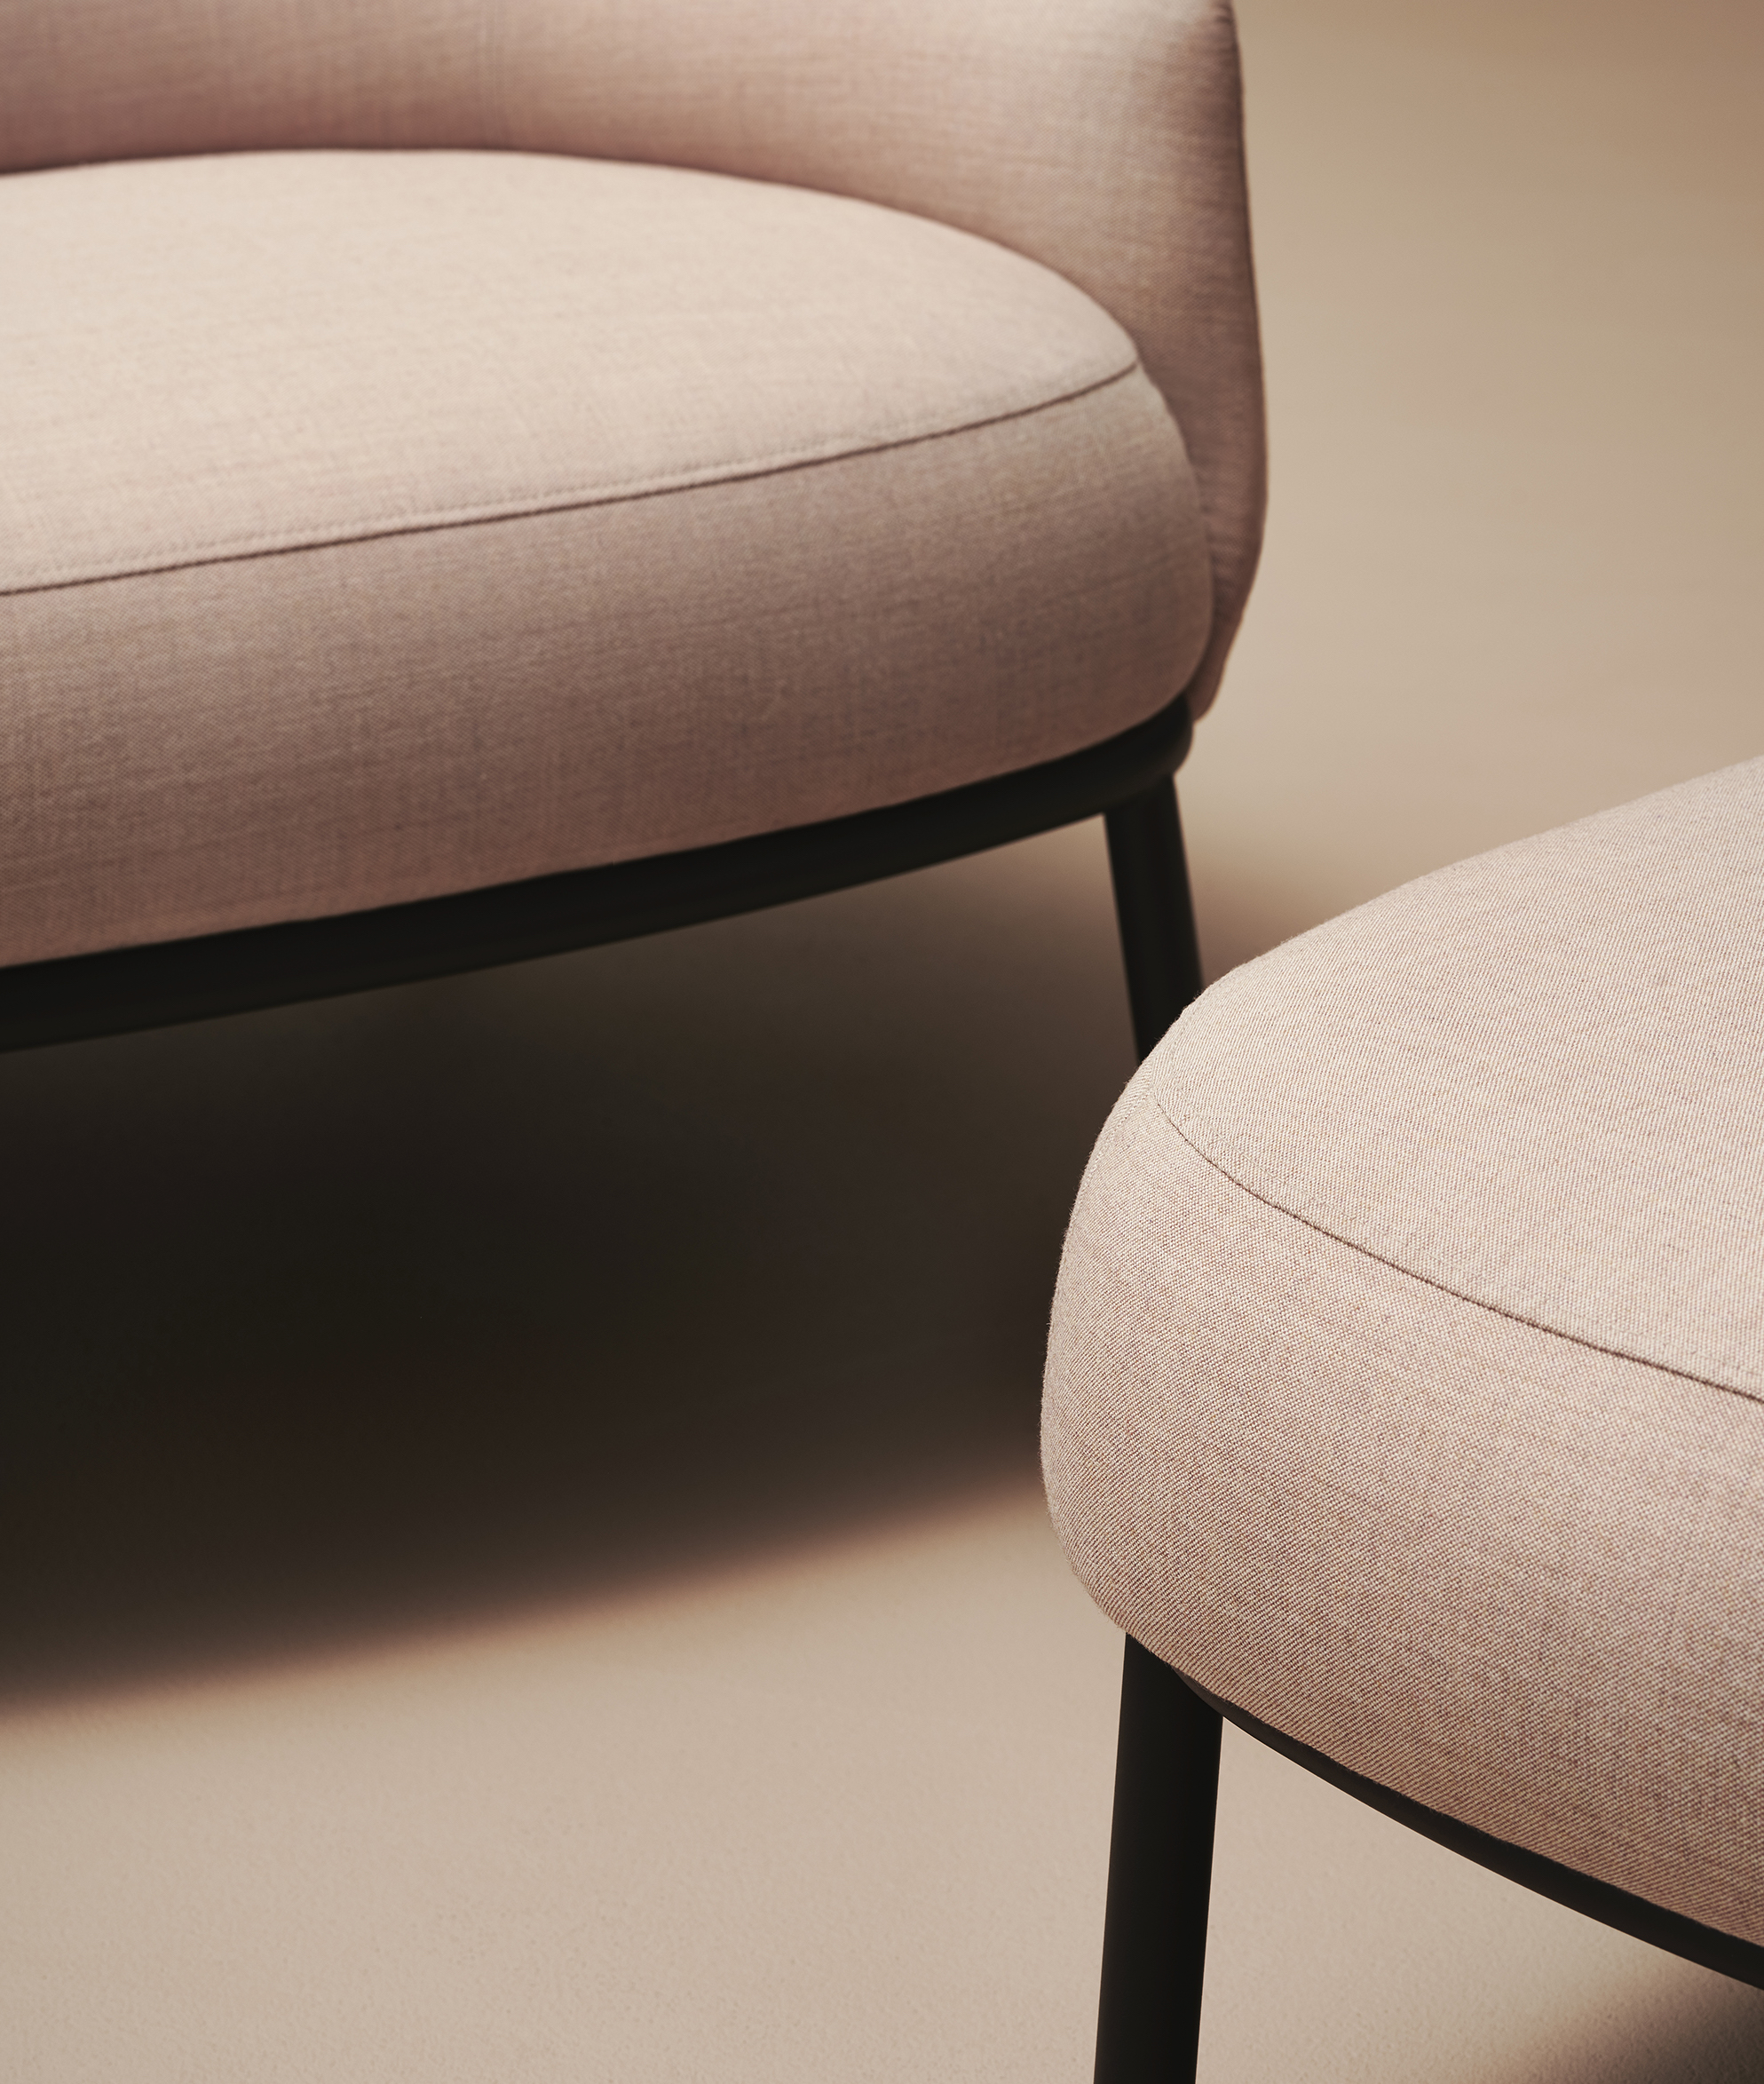 Detail of Shift easychair classic and ottoman by Debiasi Sandri for Offecct